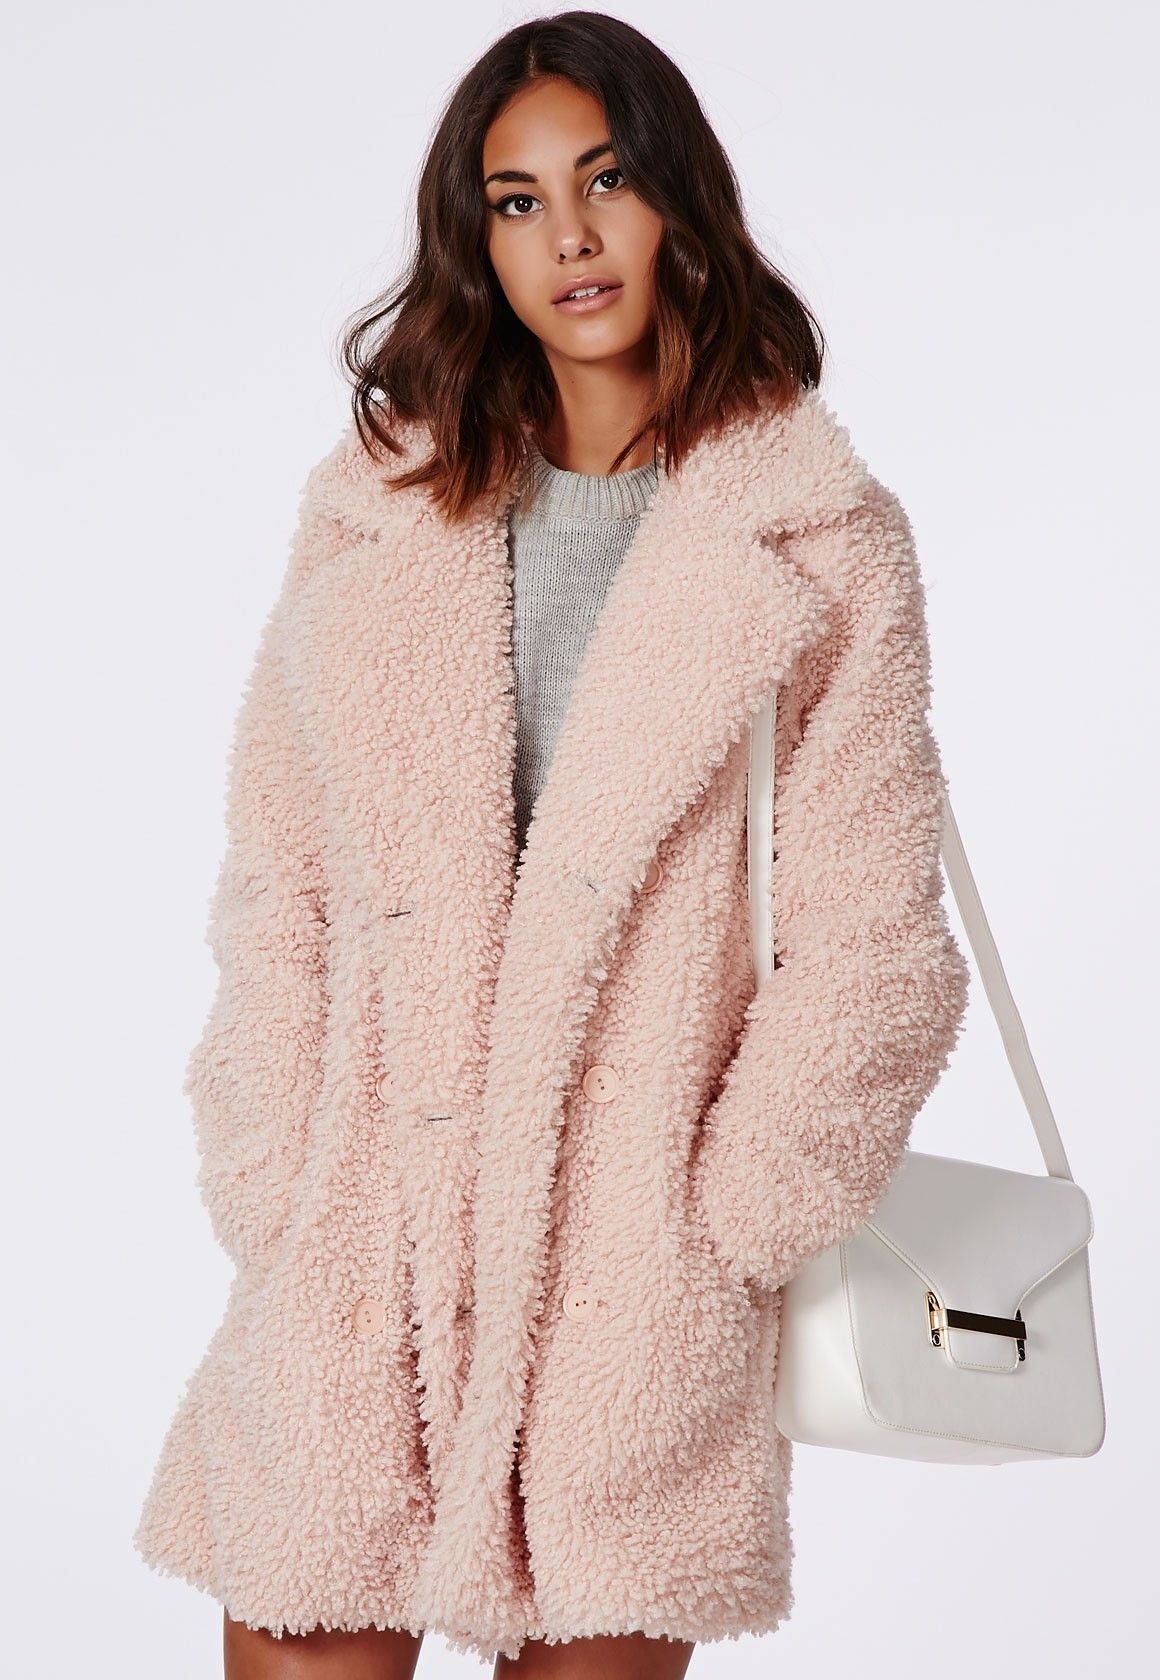 e89e5a10ee6 Celine Teddy Faux Fur Pink - Coats & Jackets - Missguided | My Style ...